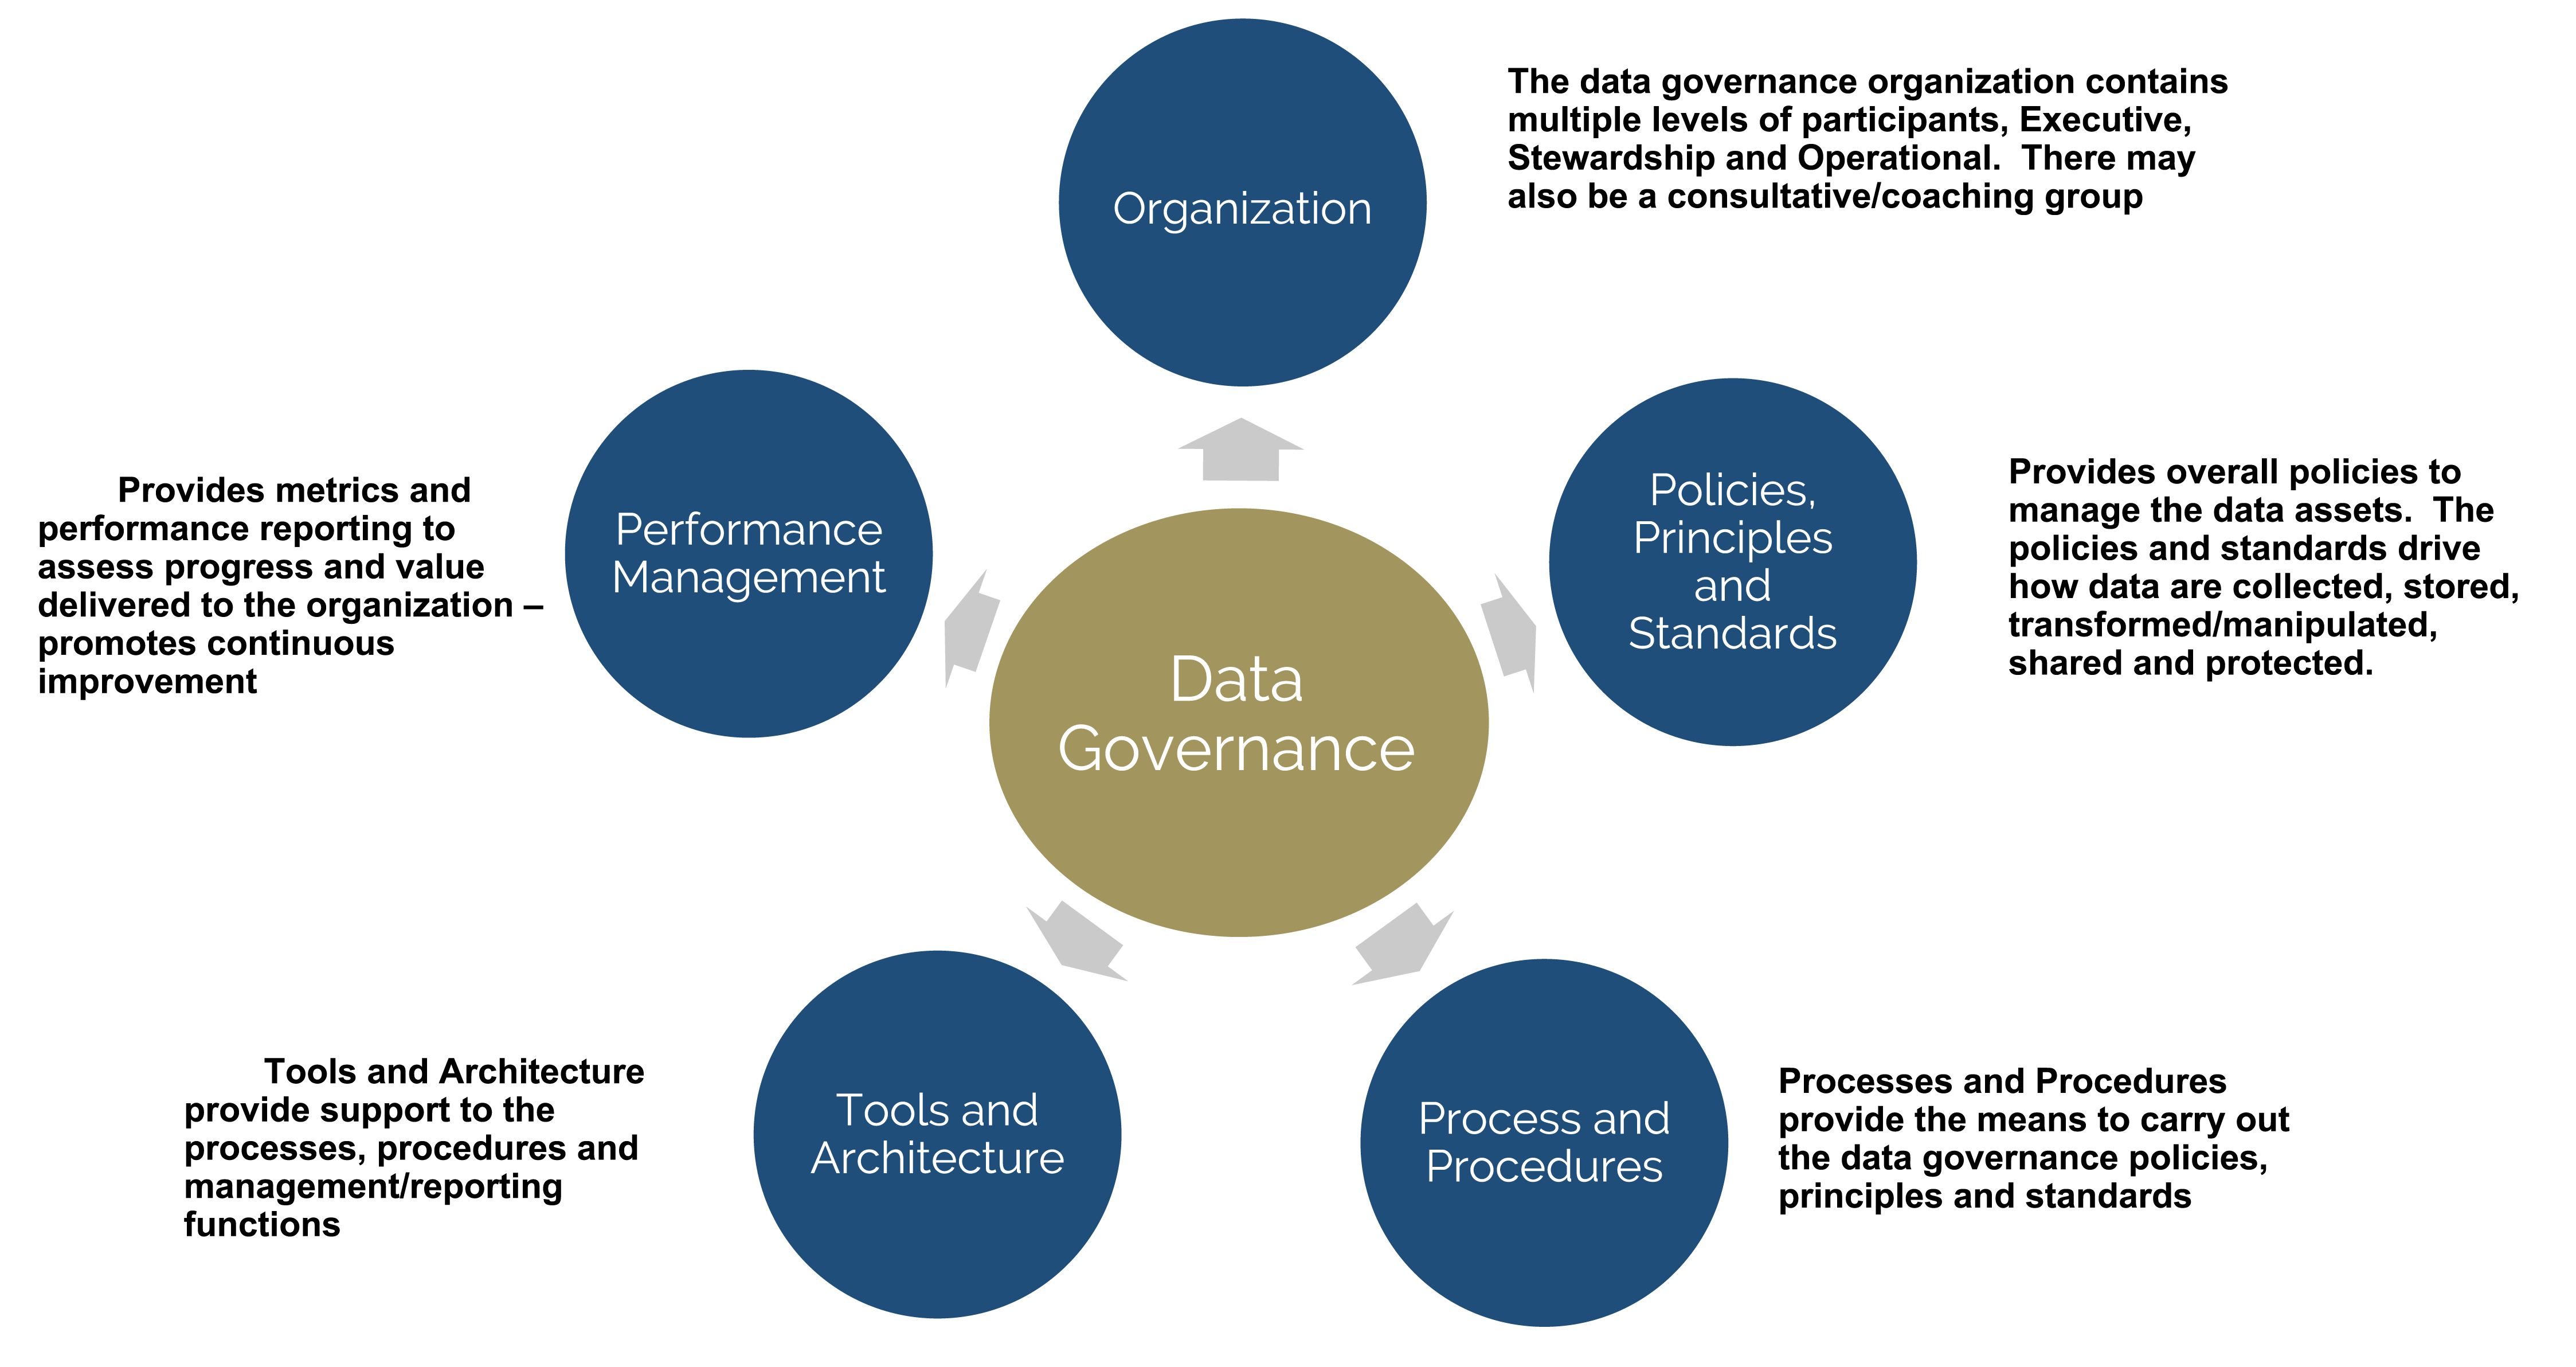 YL's Approach to Data Governance Infographic